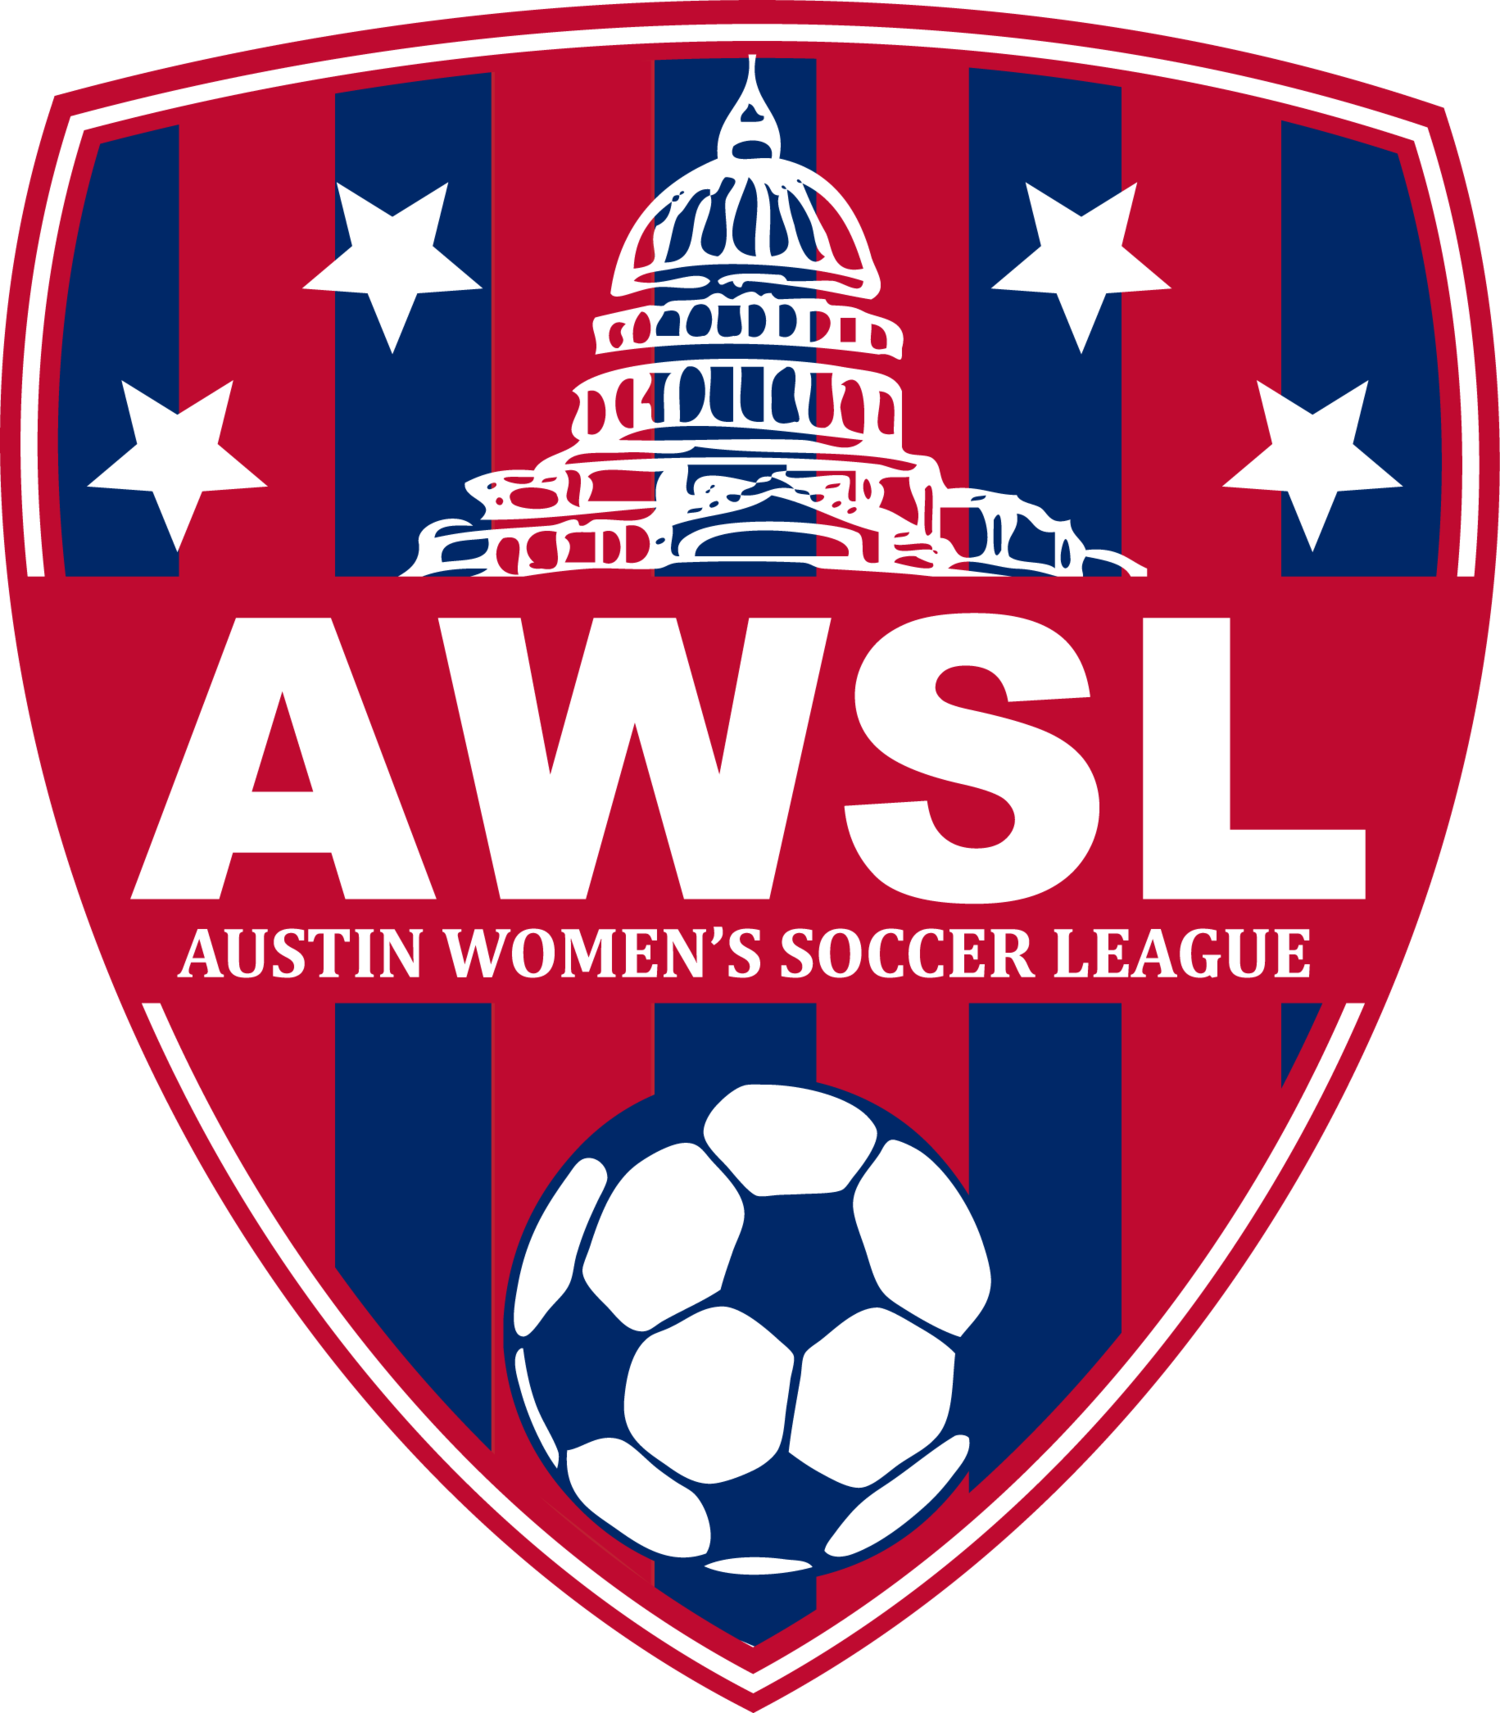 Austin Women's Soccer League